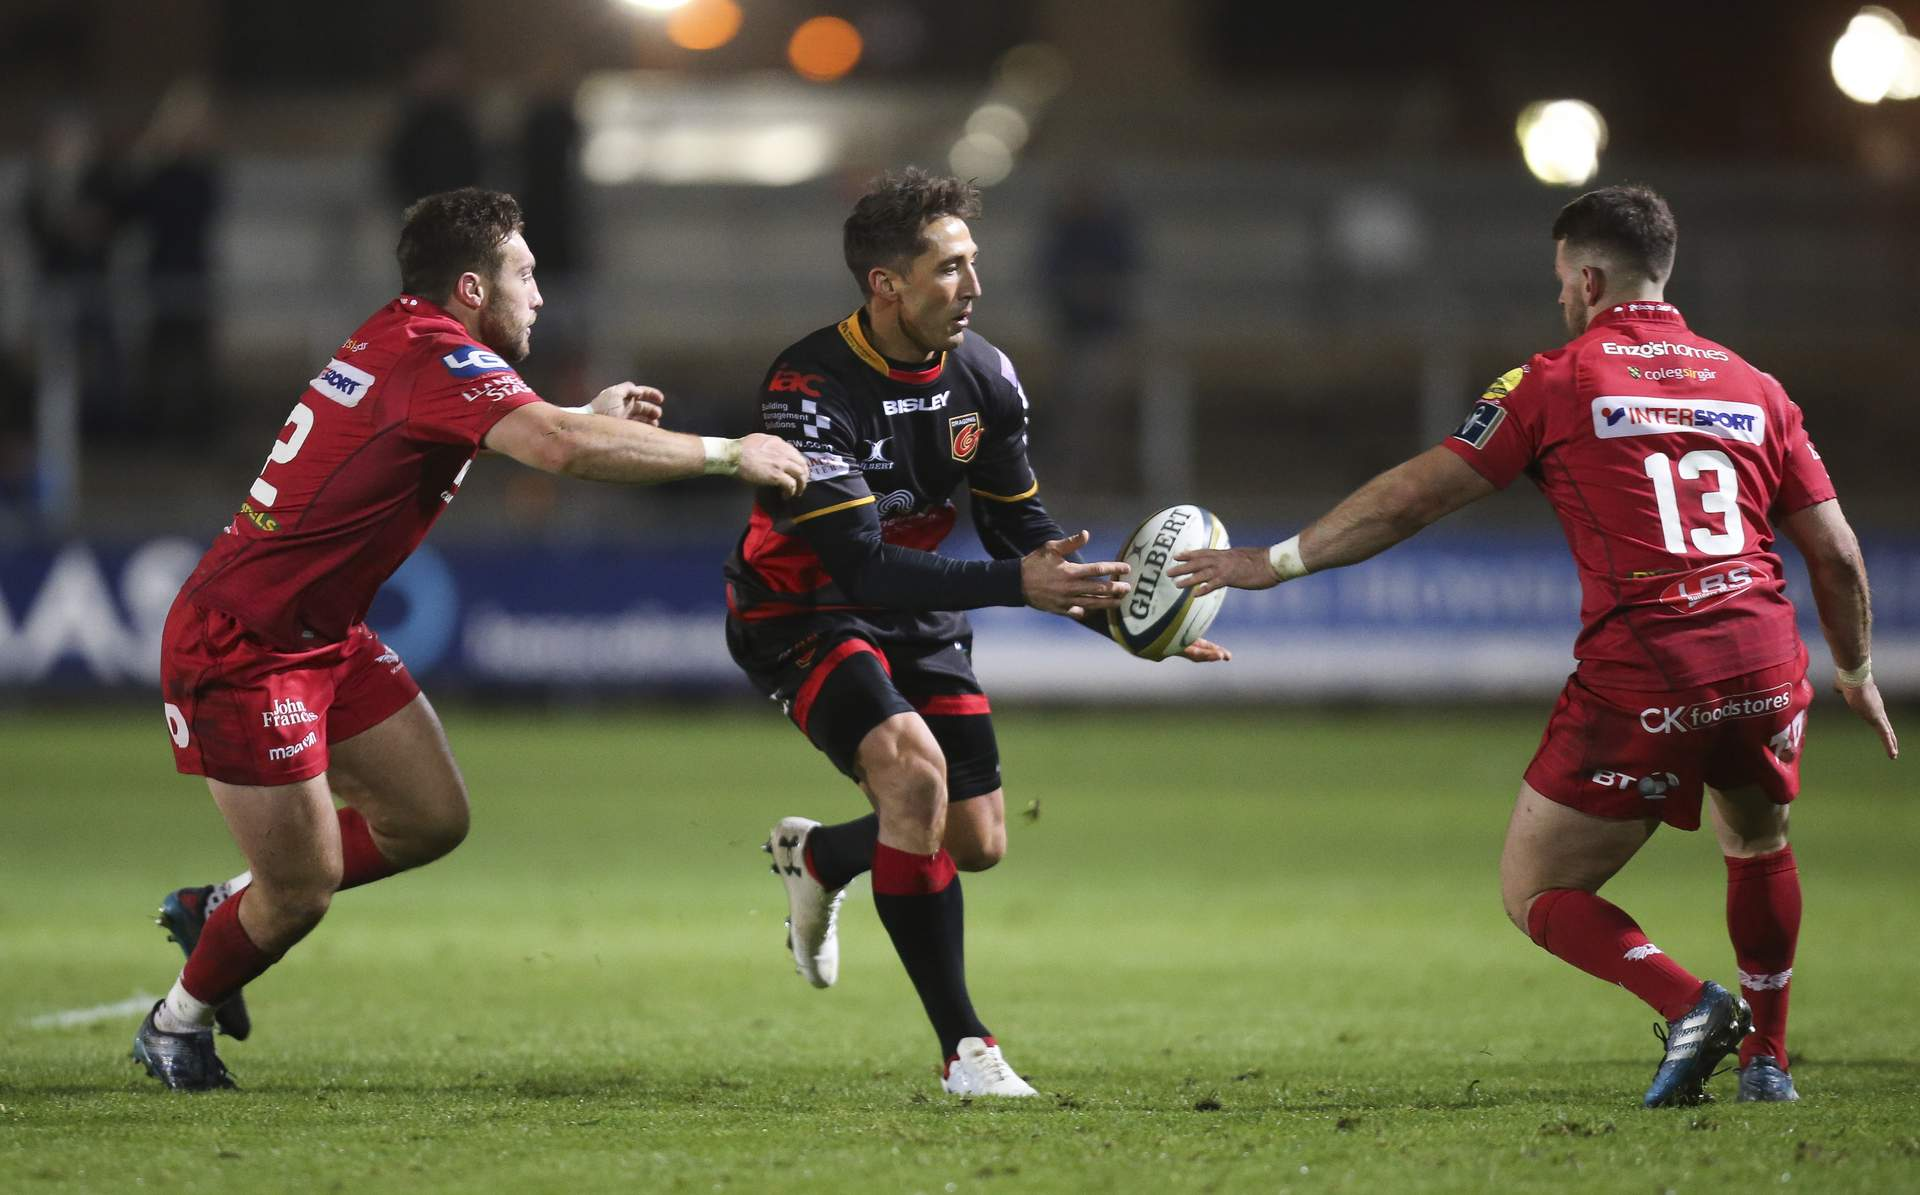 REPORT: Dragons edge Scarlets in Anglo Welsh Cup